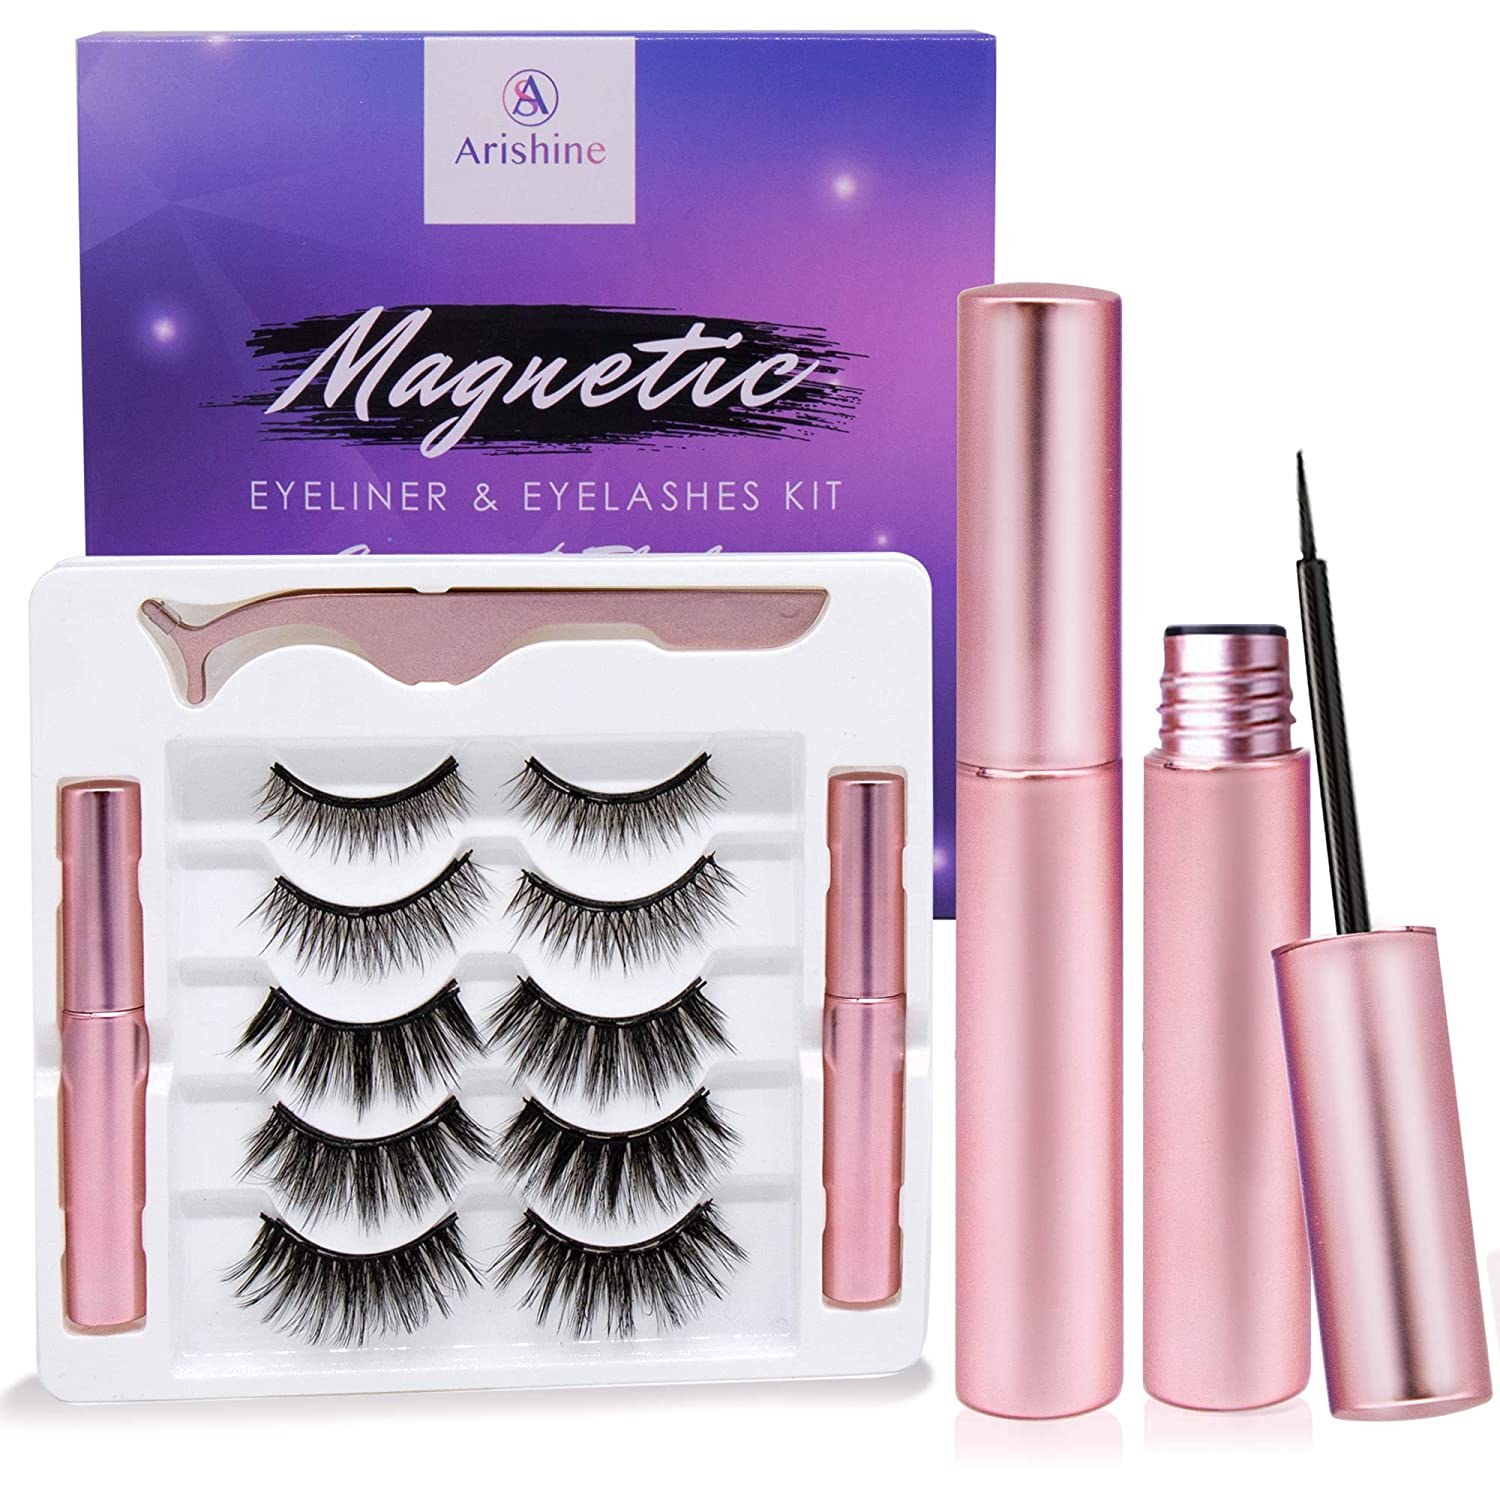 Arishine Magnetic Eyeliner and Lashes Kit, Magnetic Eyeliner for Magnetic Lashes Set, With Reusable Lashes [5 Pairs]